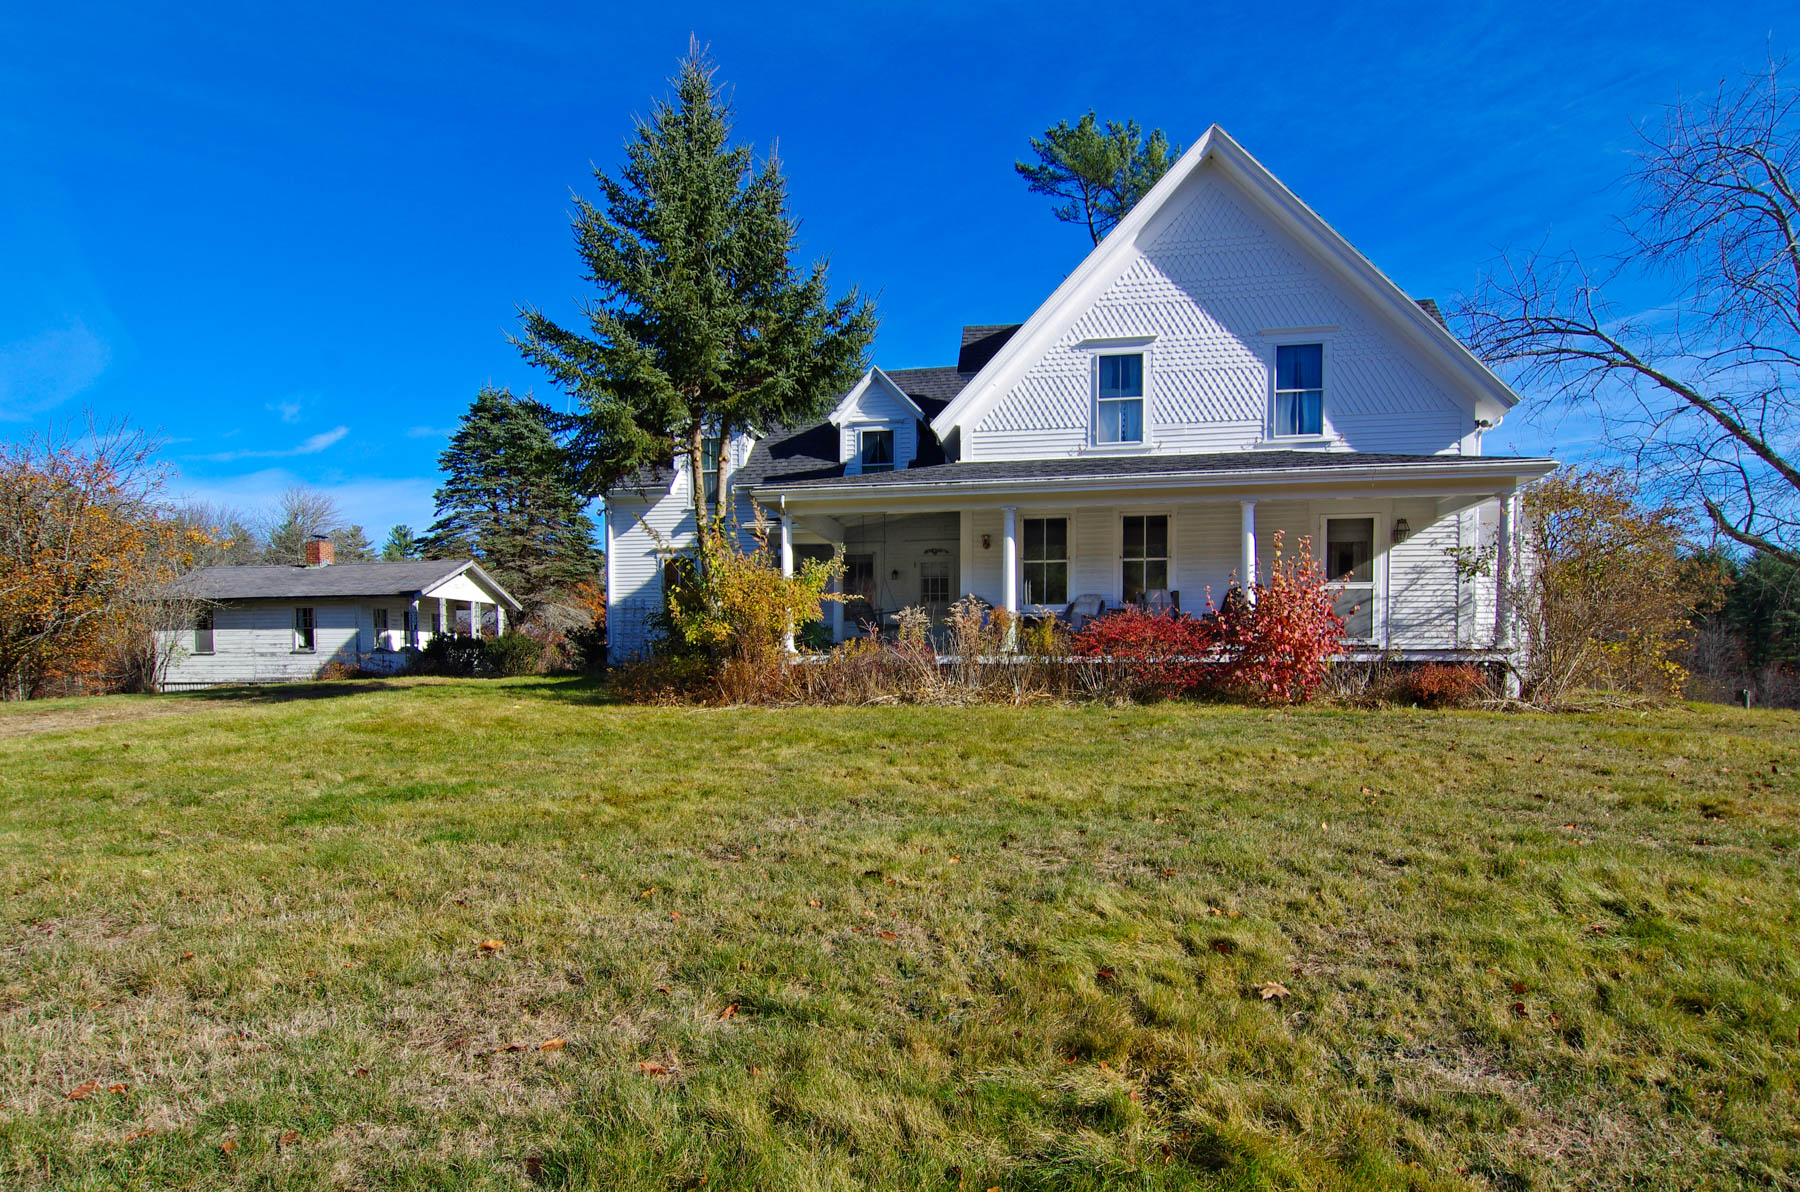 Single Family Home for Sale at 79 Sidelinger Road Nobleboro, Maine 04555 United States